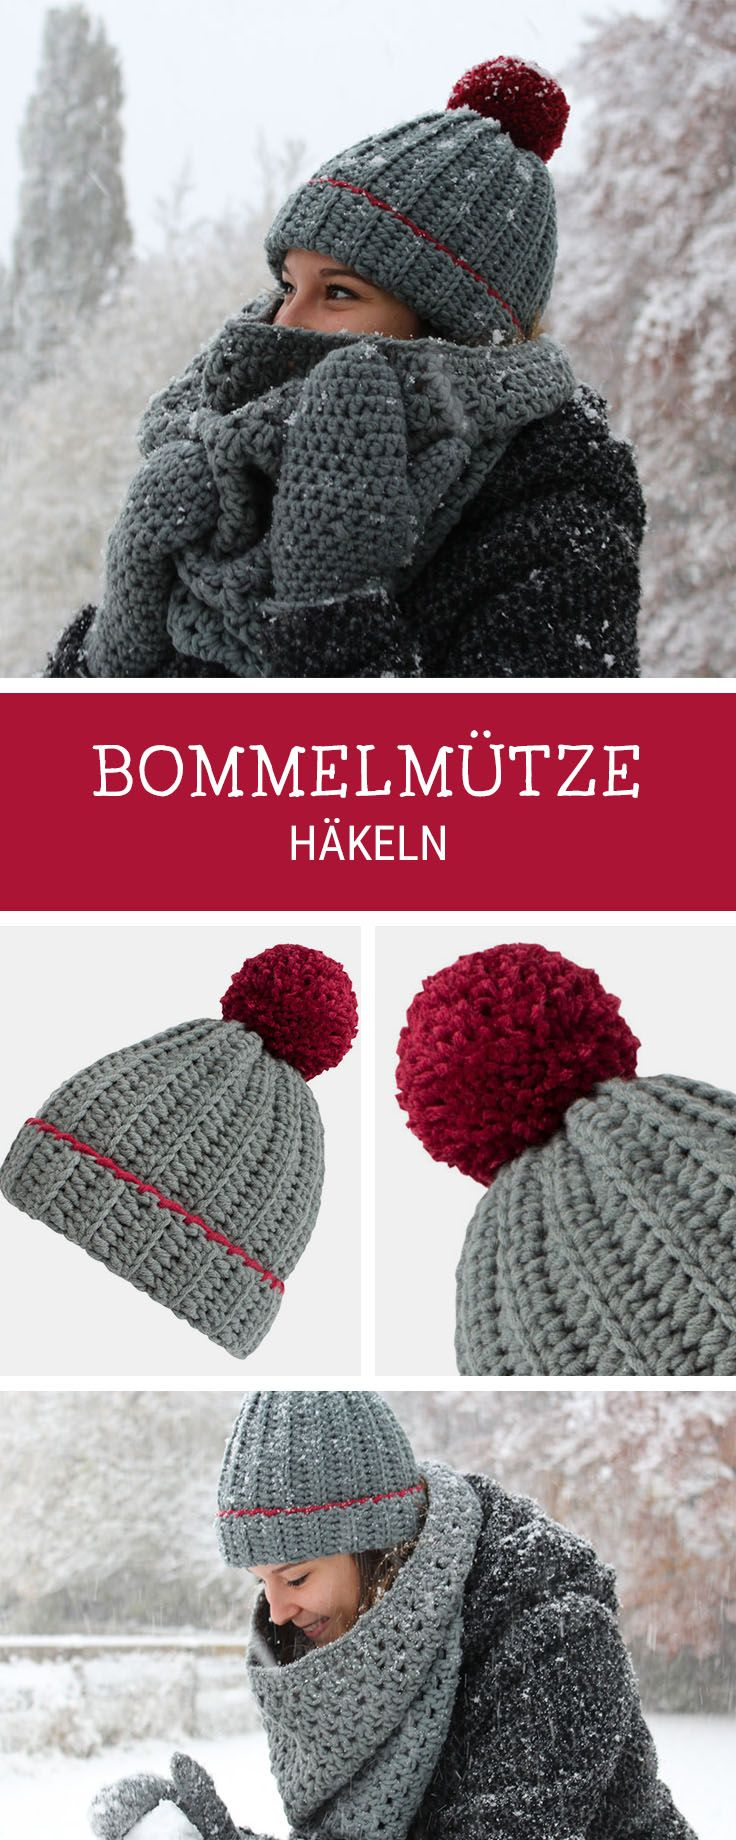 965 best Häkeln images on Pinterest | Crochet patterns, Amigurumi ...